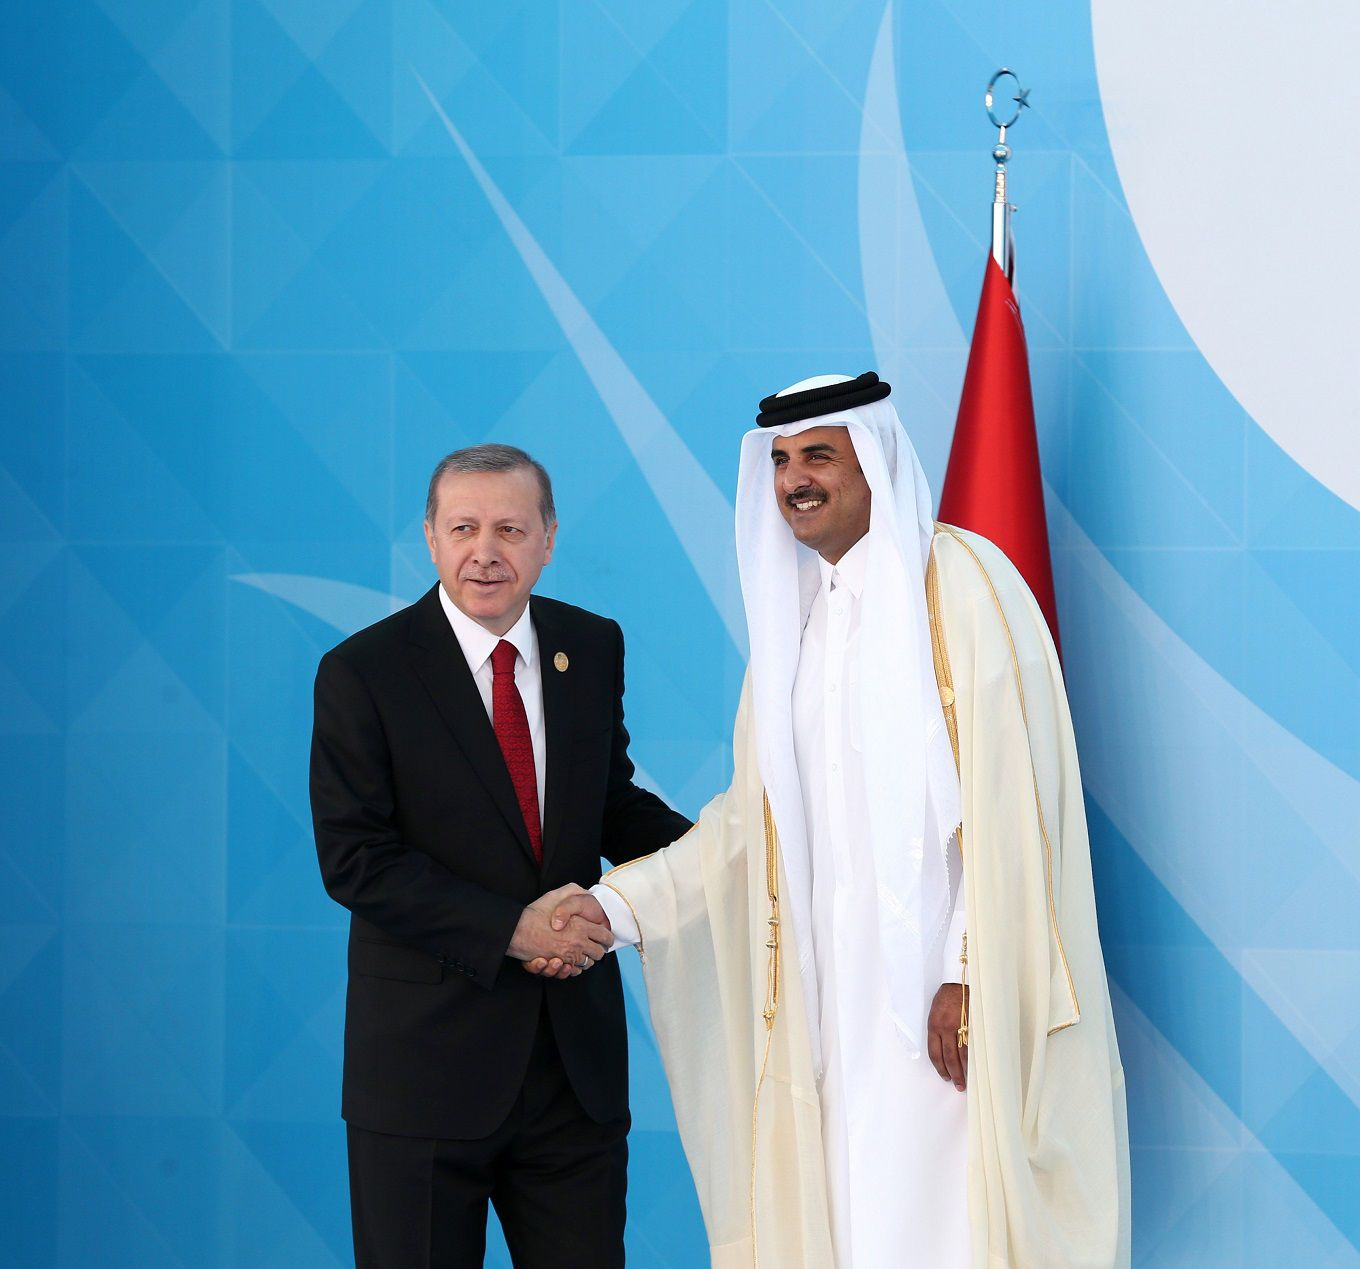 Turkish President Recep Tayyip Erdogan (L) shakes hands with Emir of Qatar, Sheikh Tamim bin Hamad Al Thani (R) during the 13th Organization of Islamic Cooperation (OIC) Summit at Istanbul Congress Center (ICC) on April 14, 2016 in Istanbul.  Erdogan on April 14 hosts over 30 heads of state and government from Islamic countries in Istanbul for a major summit aimed at overcoming differences in the Muslim world.  / AFP / POOL / ARIF HUDAVERDI YAMAN        (Photo credit should read ARIF HUDAVERDI YAMAN/AFP/Getty Images)